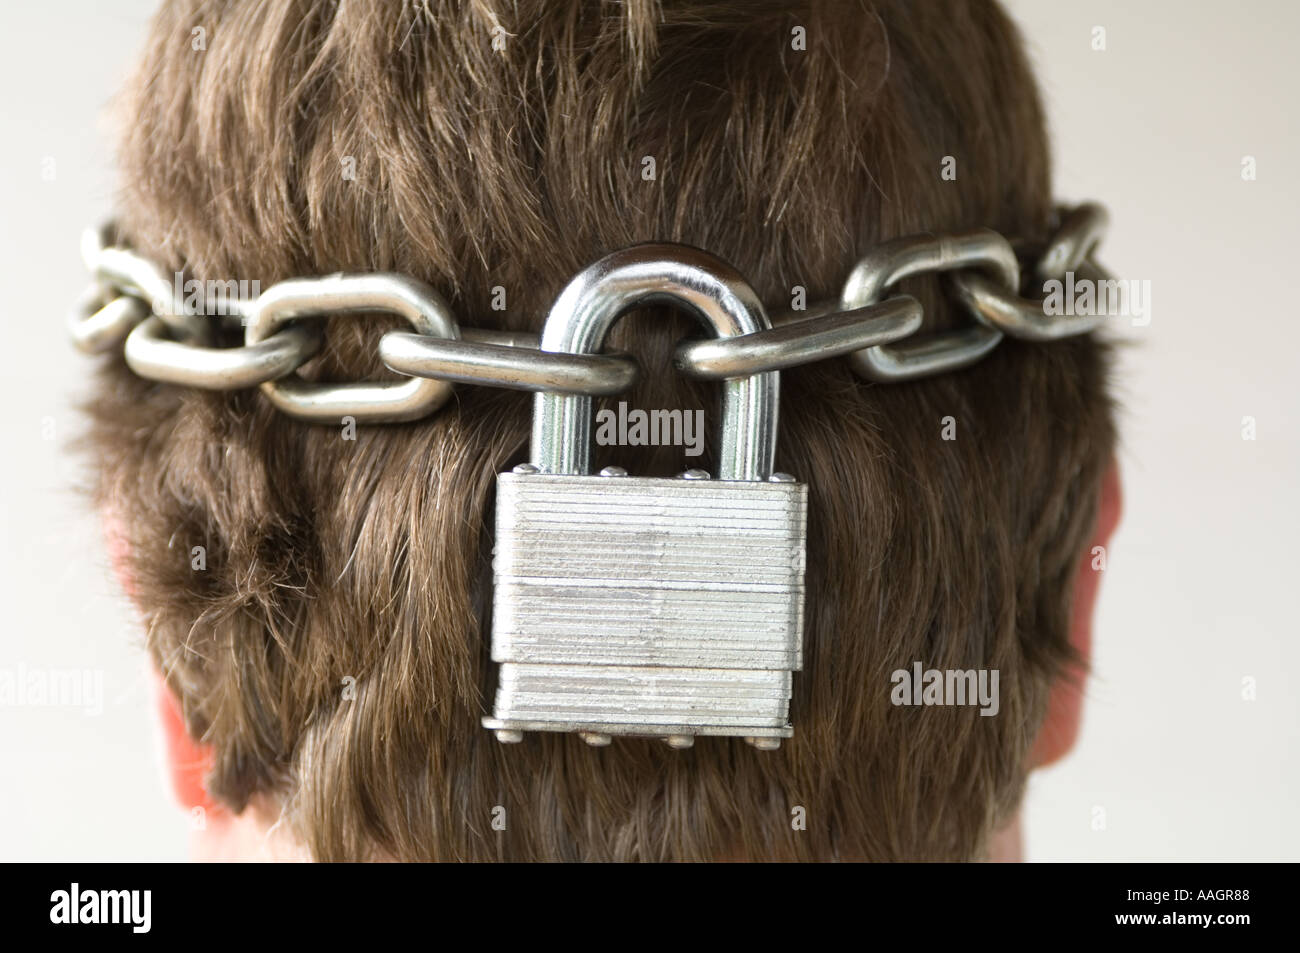 abstract view of male head enclosed in chain and padlock - Stock Image